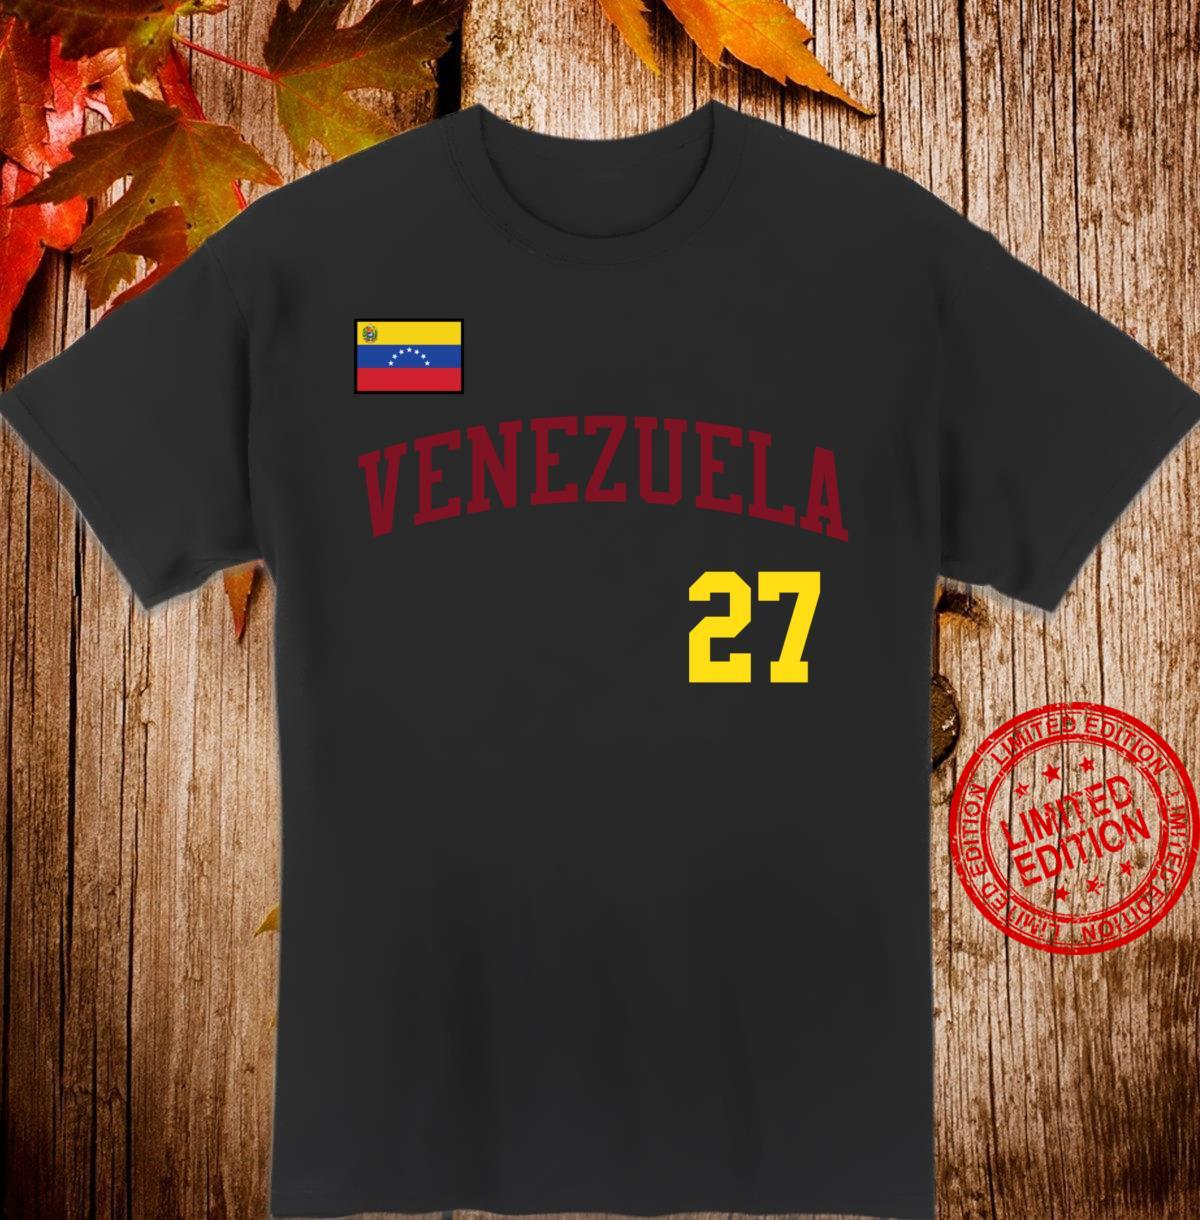 Retro Venezuela Design for Baseball Fans and Venezuelans Shirt